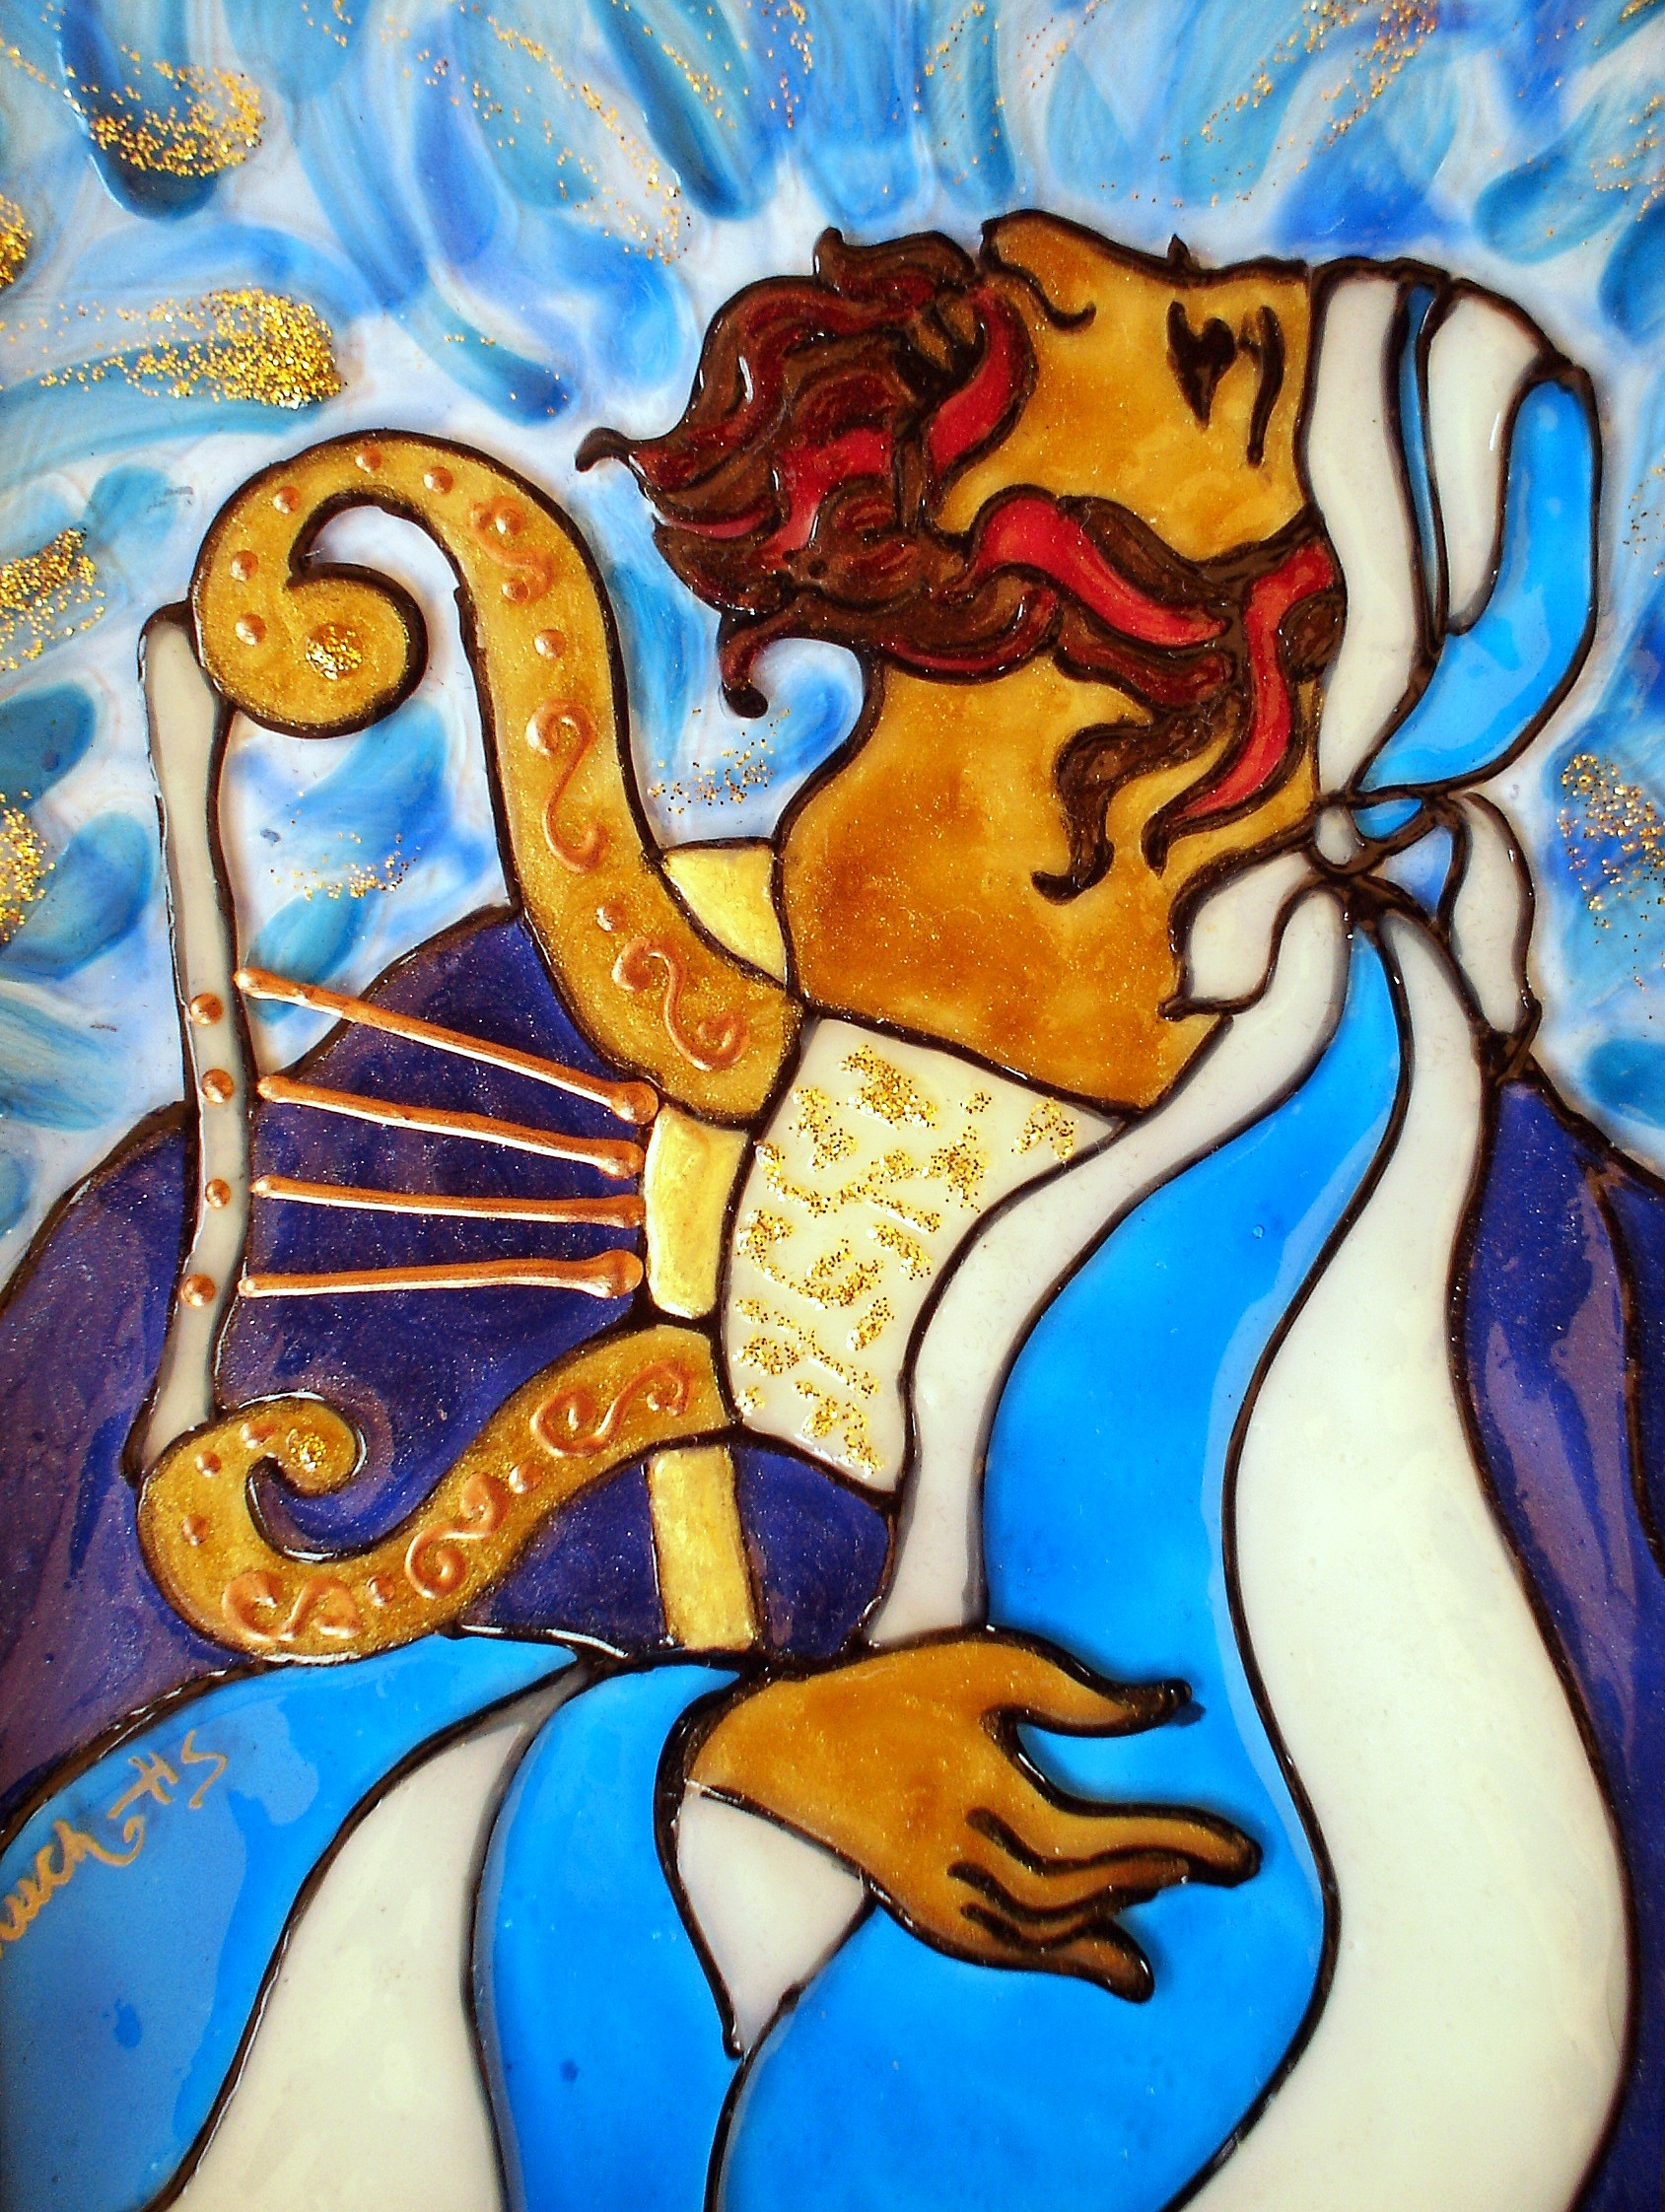 King David with his Harp